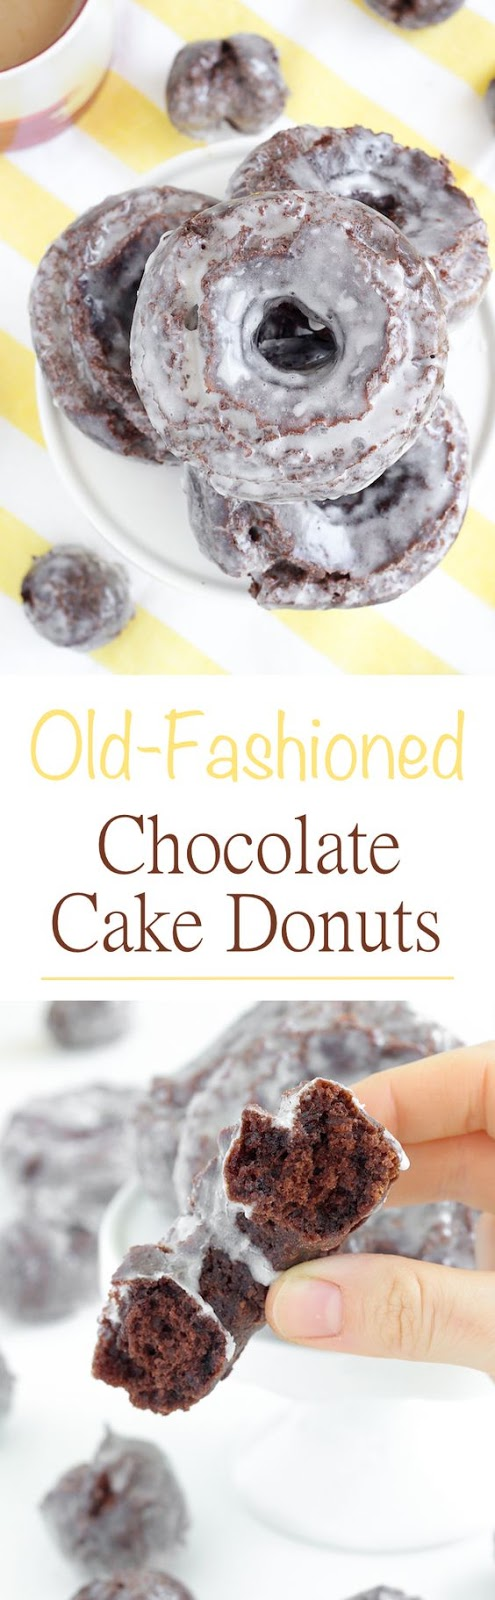 OLD FASHIONED CHOCOLATE CAKE DONUTS #OLD #FASHIONED #CHOCOLATE #CAKE #DONUTS #OLD #FASHIONED #CHOCOLATE #CAKE #DONUTS